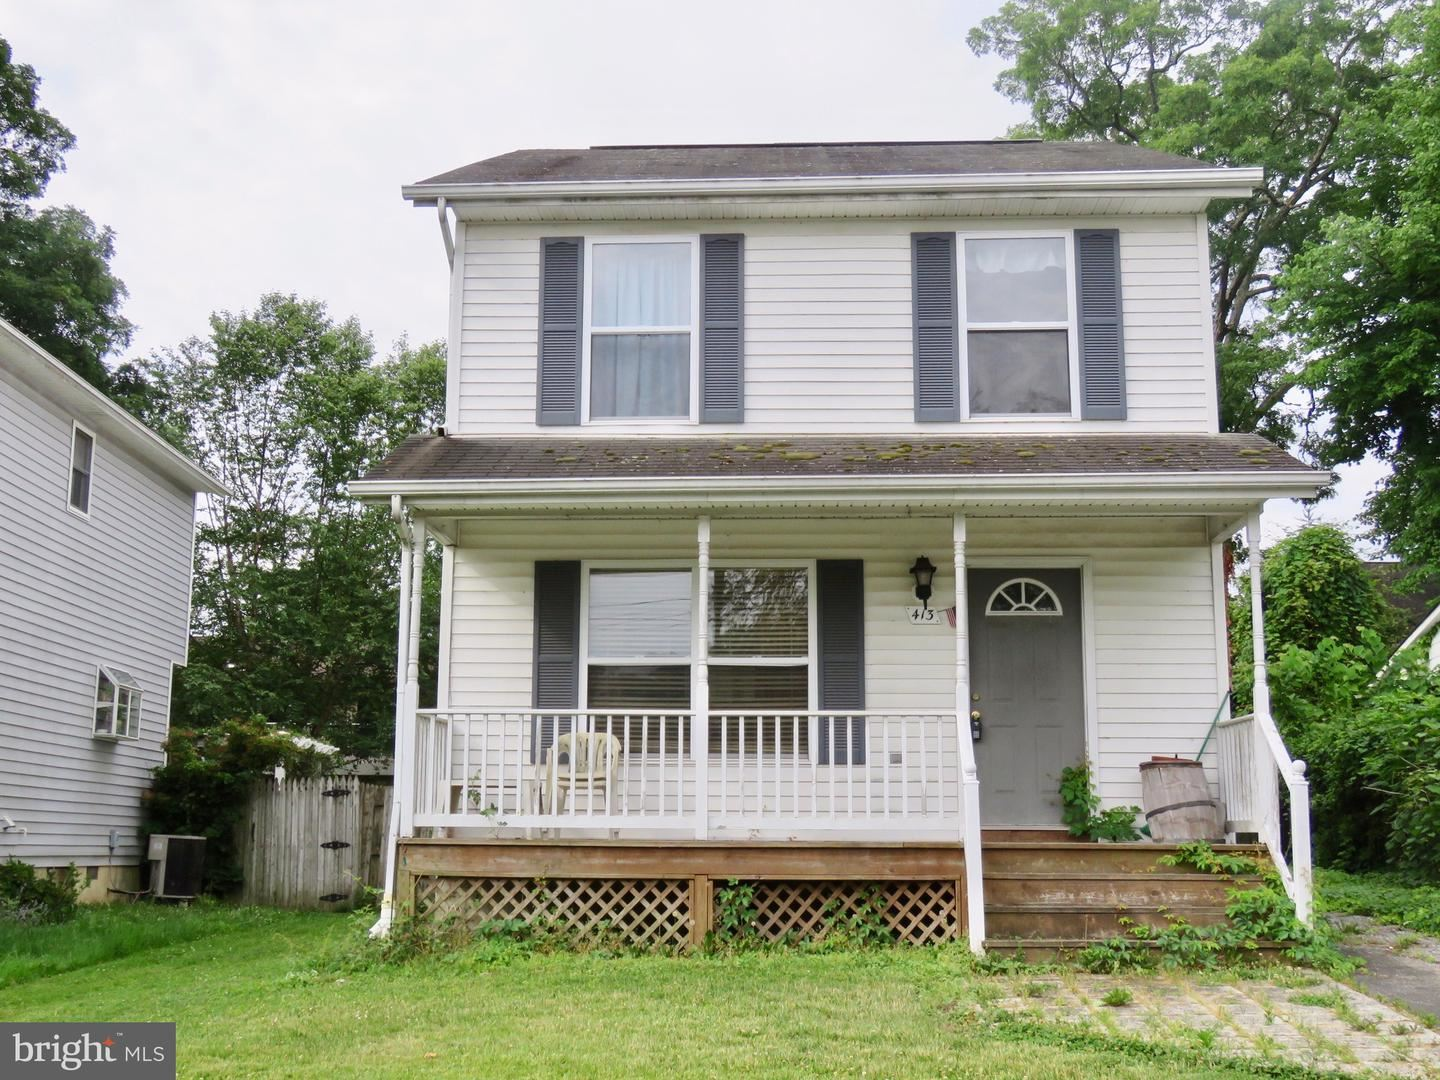 413 CEDAR GROVE RD, Edgewater, MD 21037 - MLS#: MDAA467706